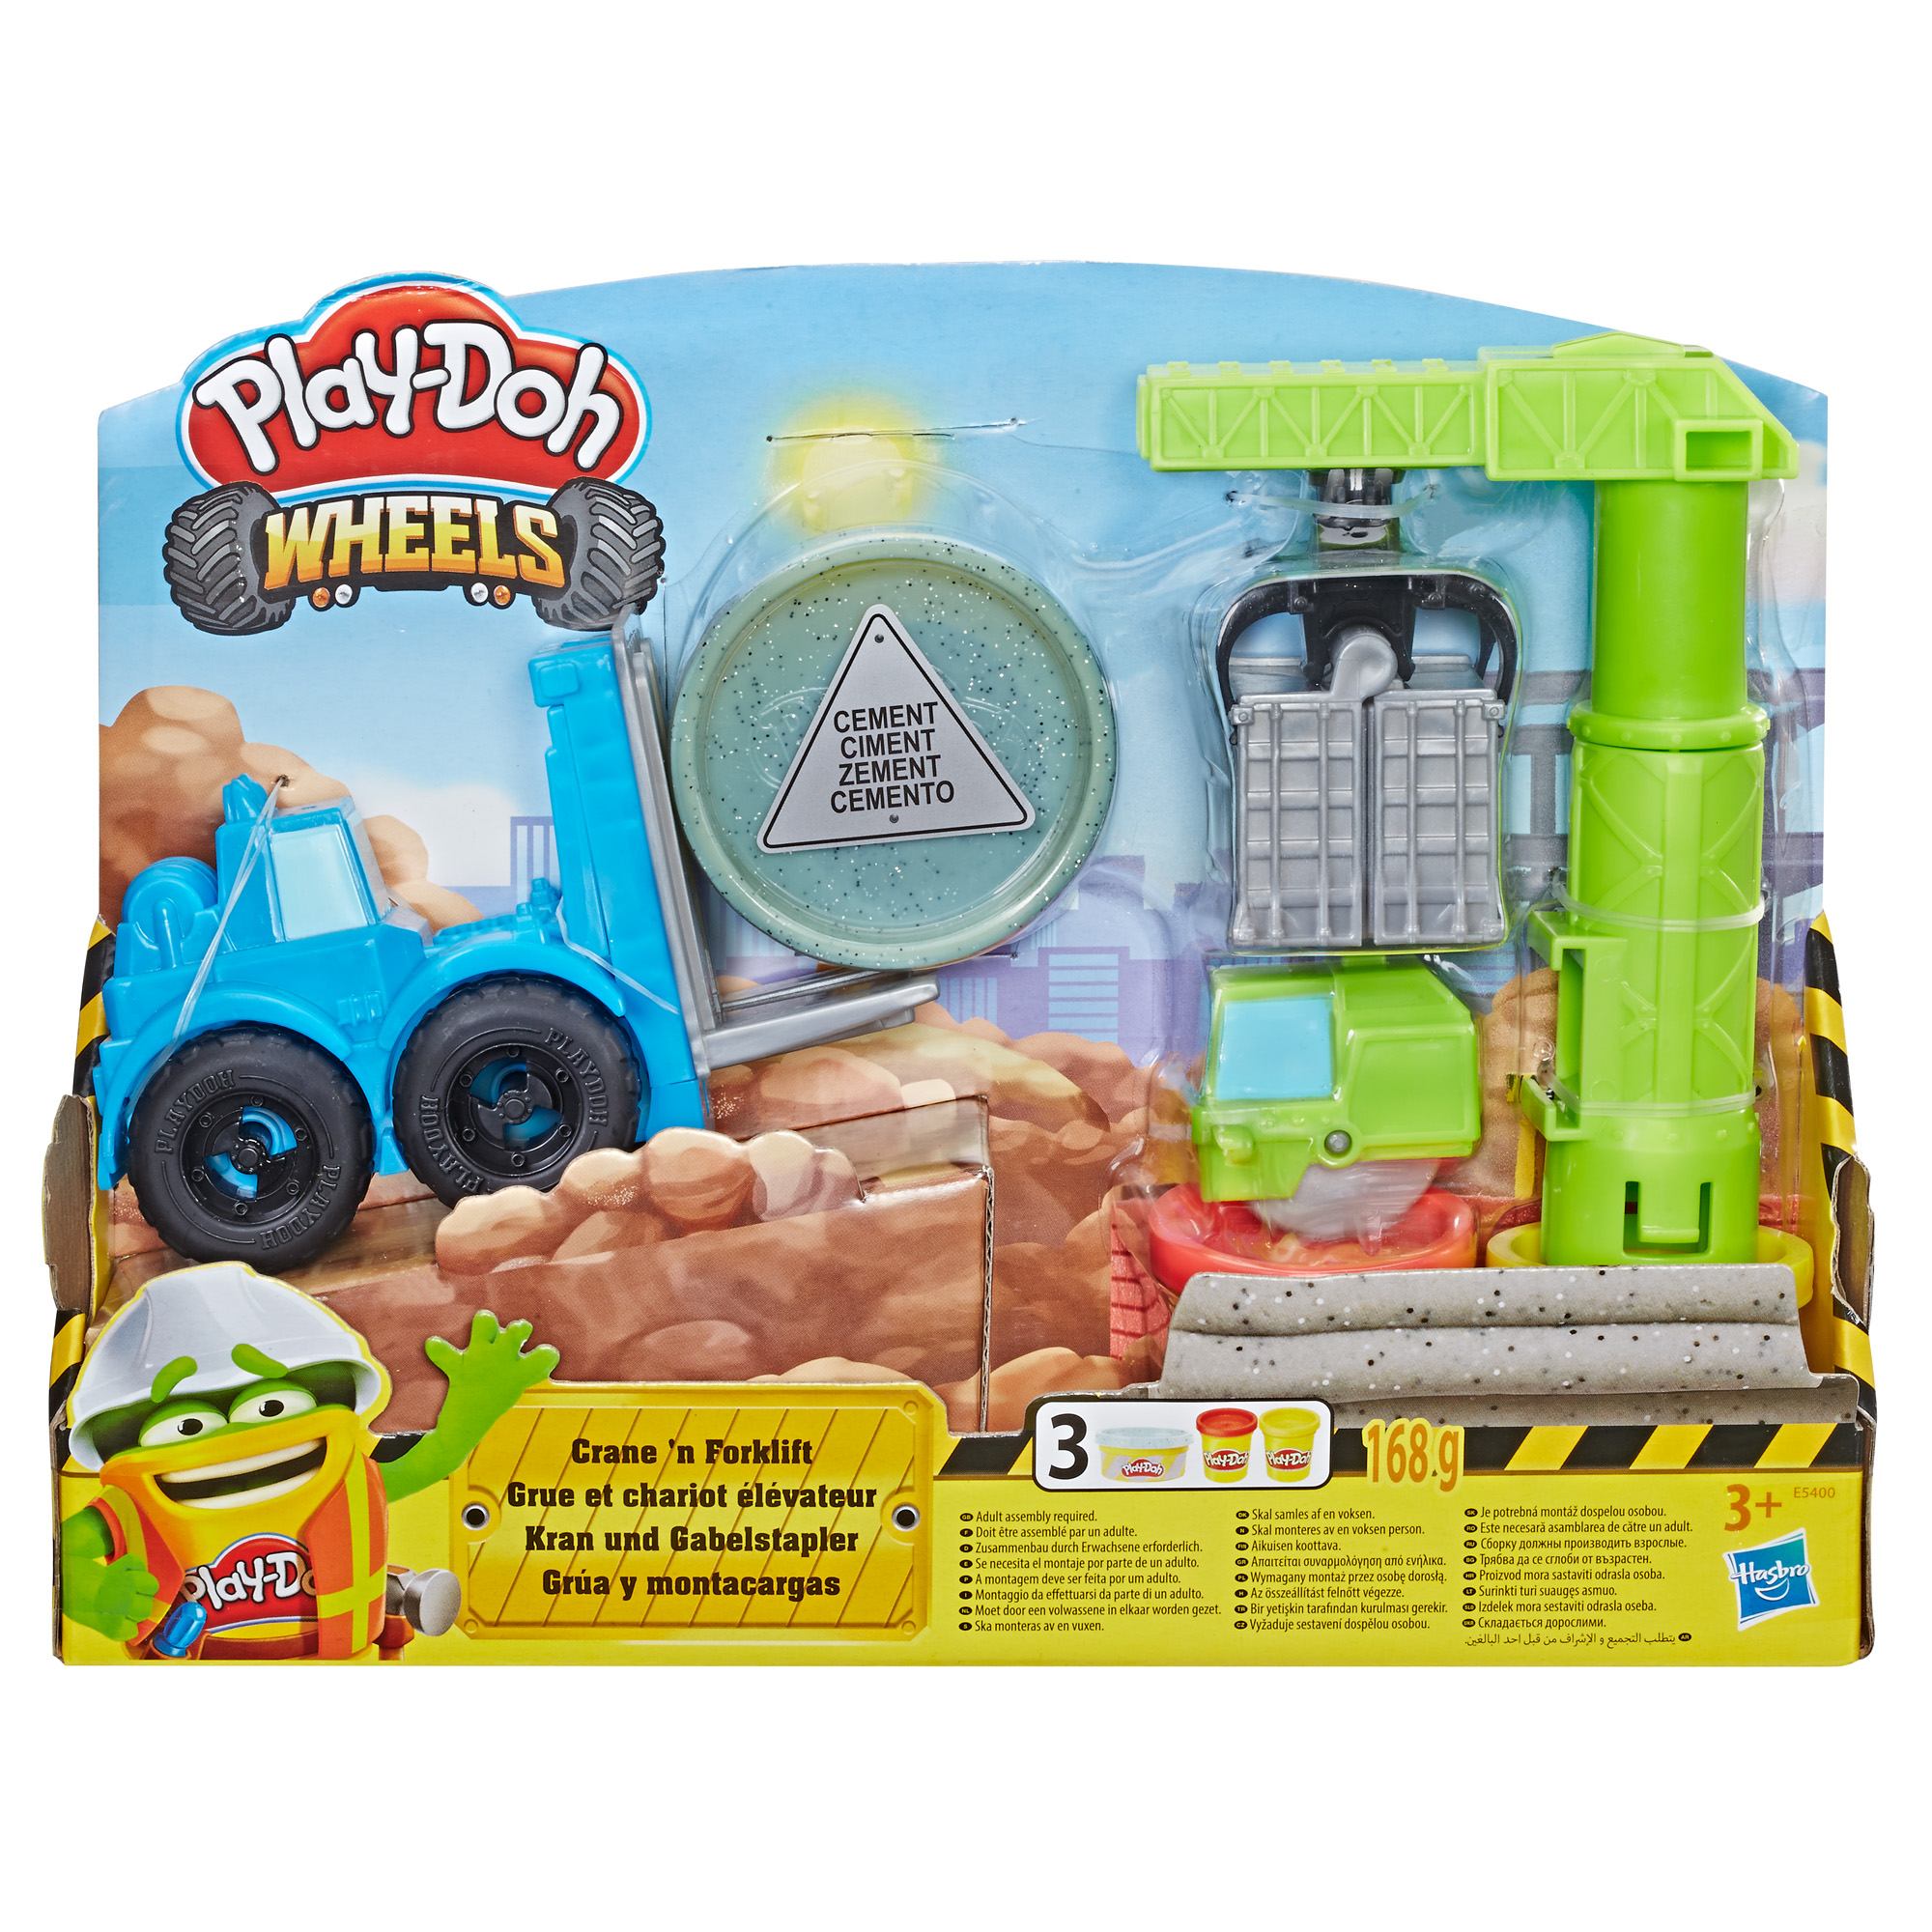 Play-Doh Wheels Crane & Forklift Construction Toyset